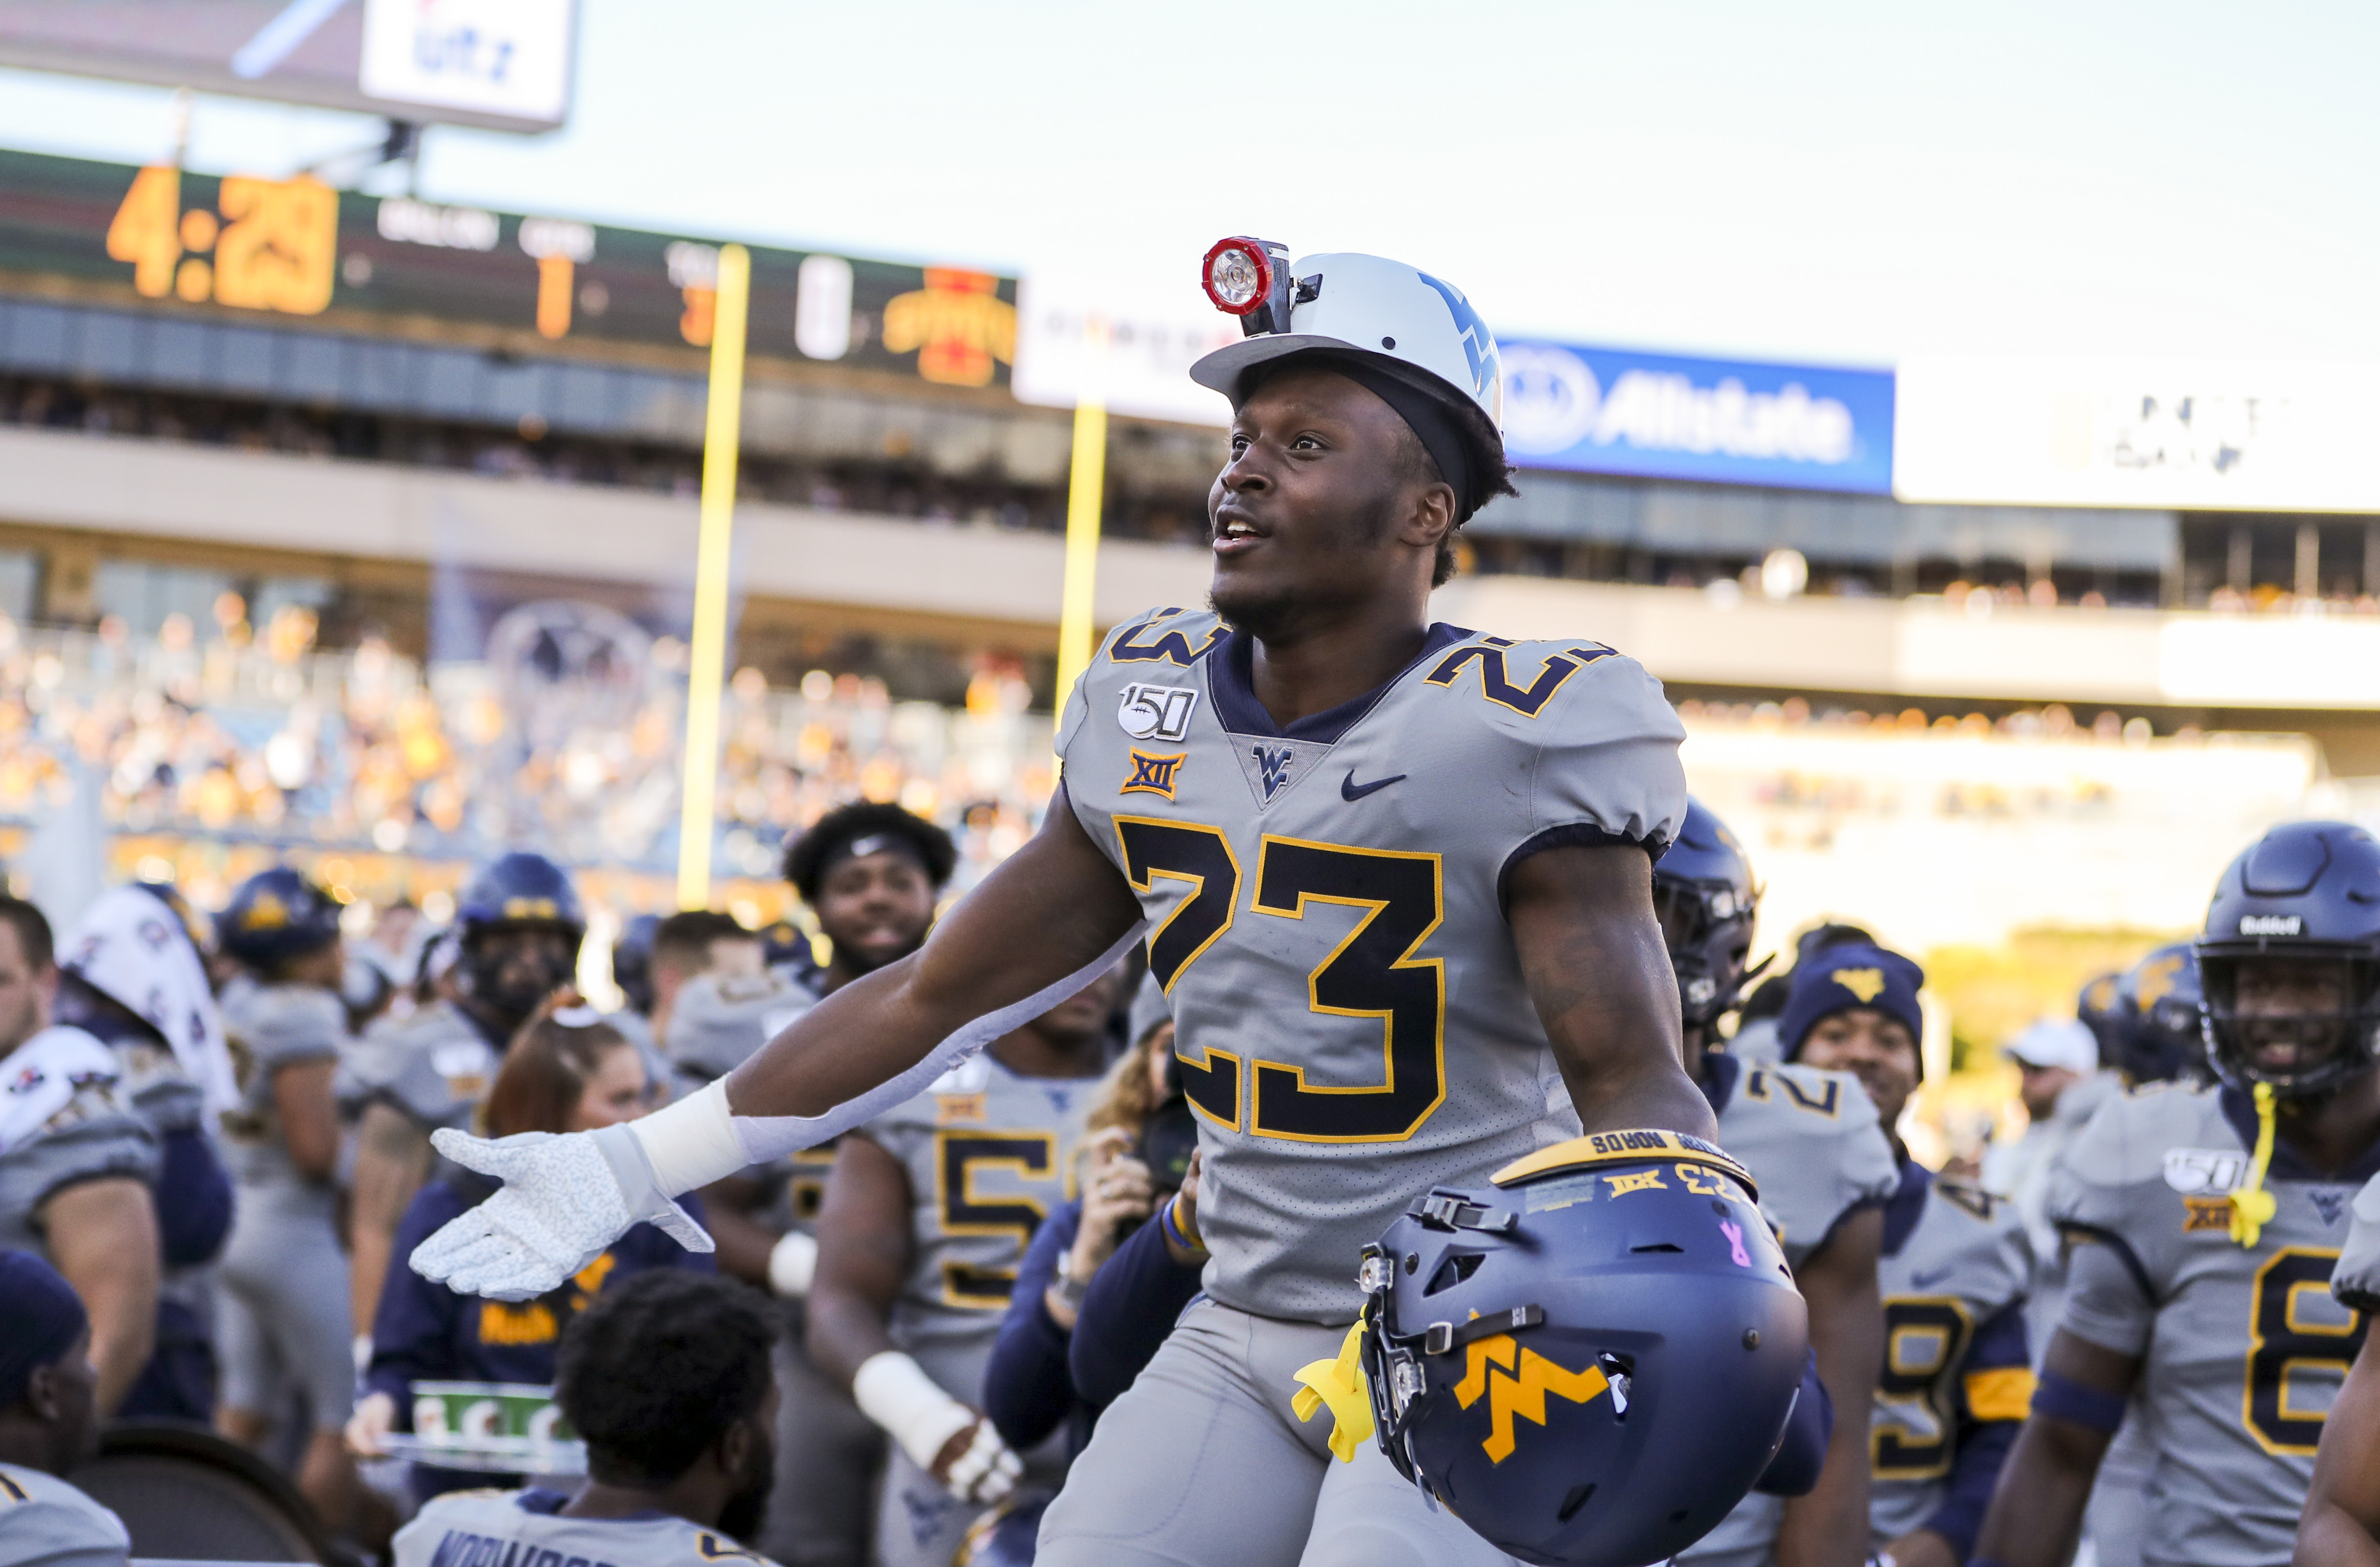 College Football News Predicts a Huge Year for Neal Brown, West Virginia